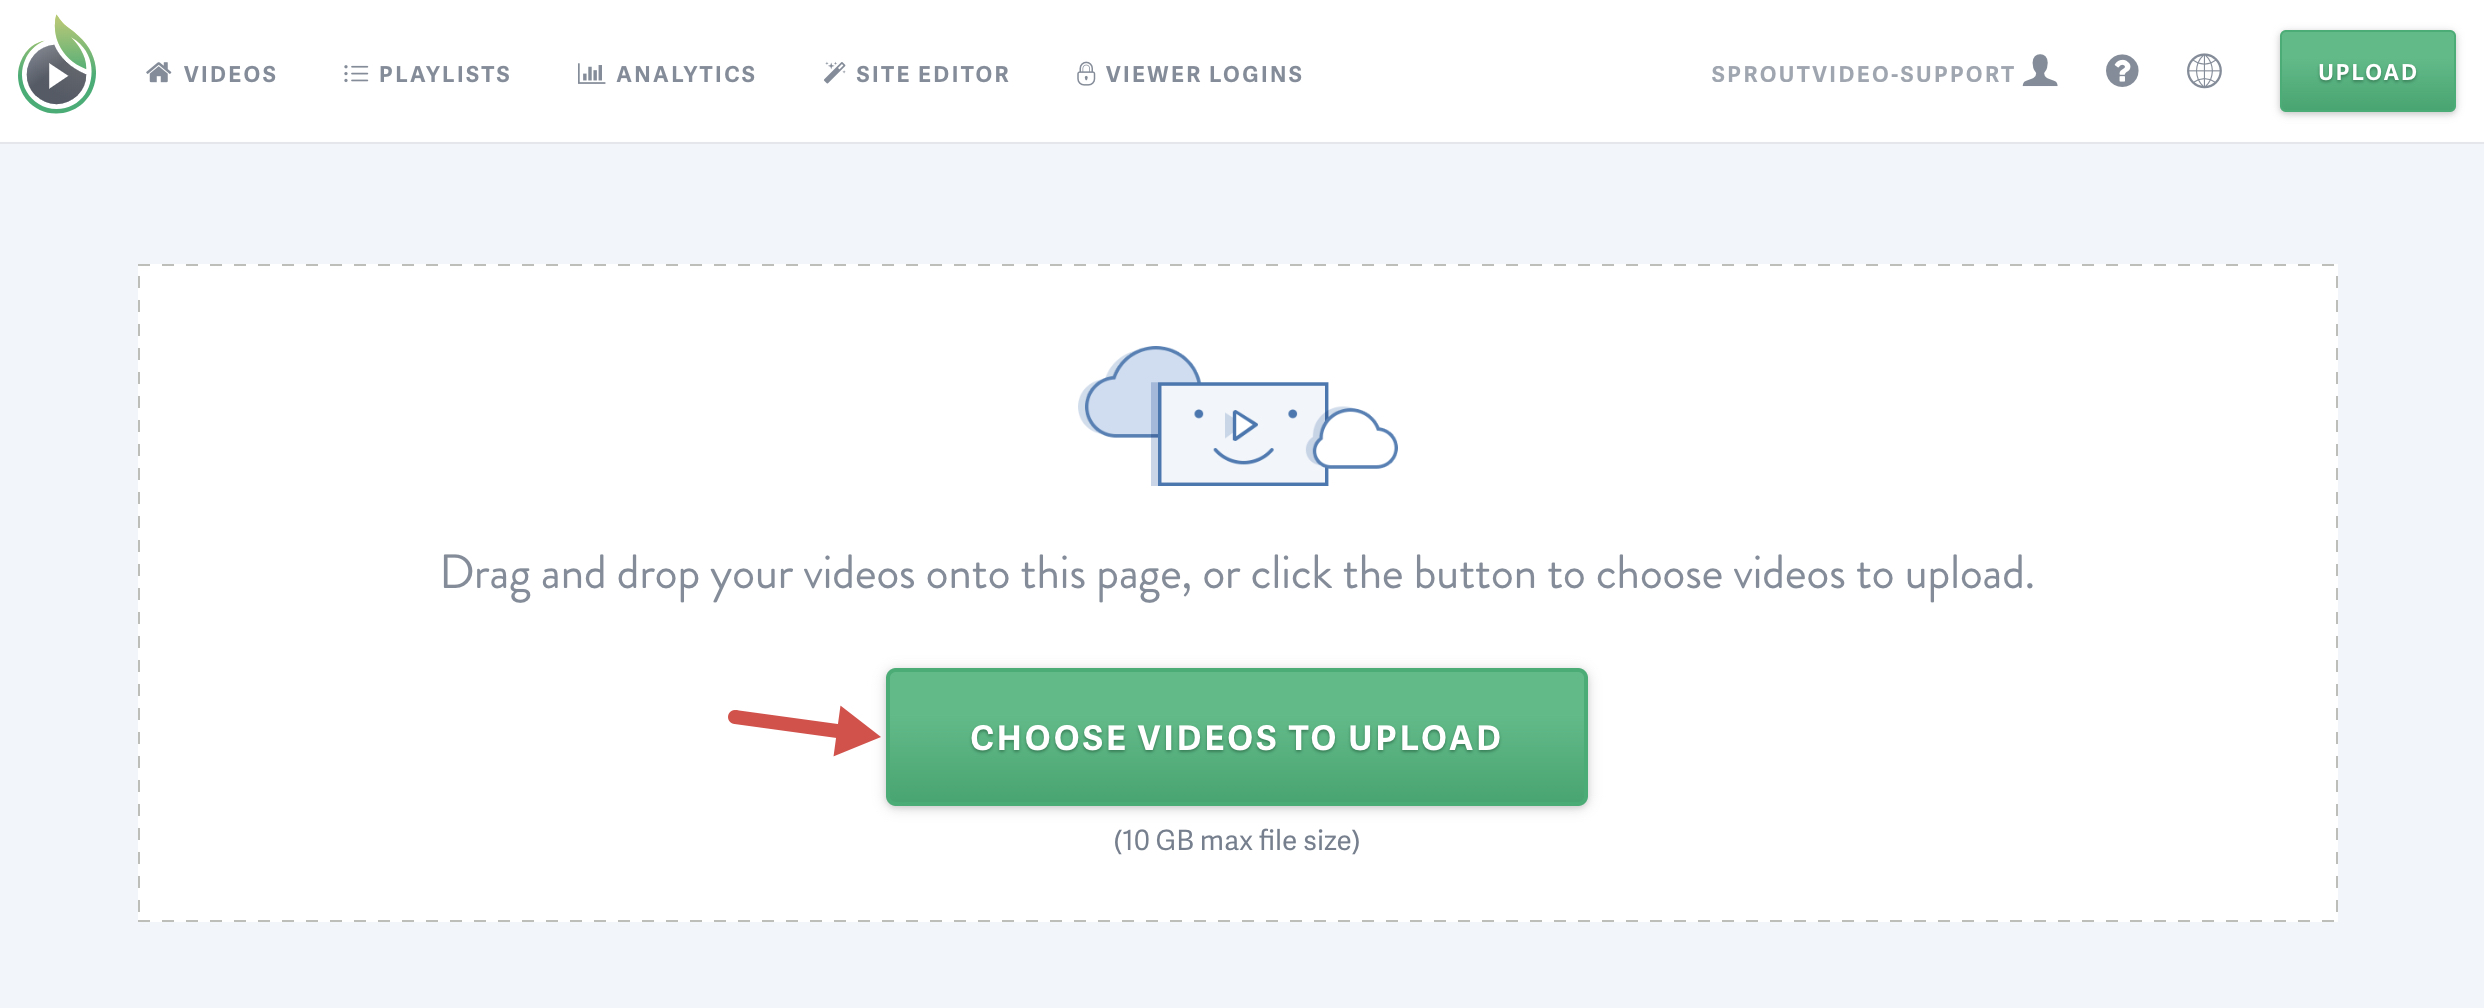 locate the file you'd like to upload to your SproutVideo hosting account